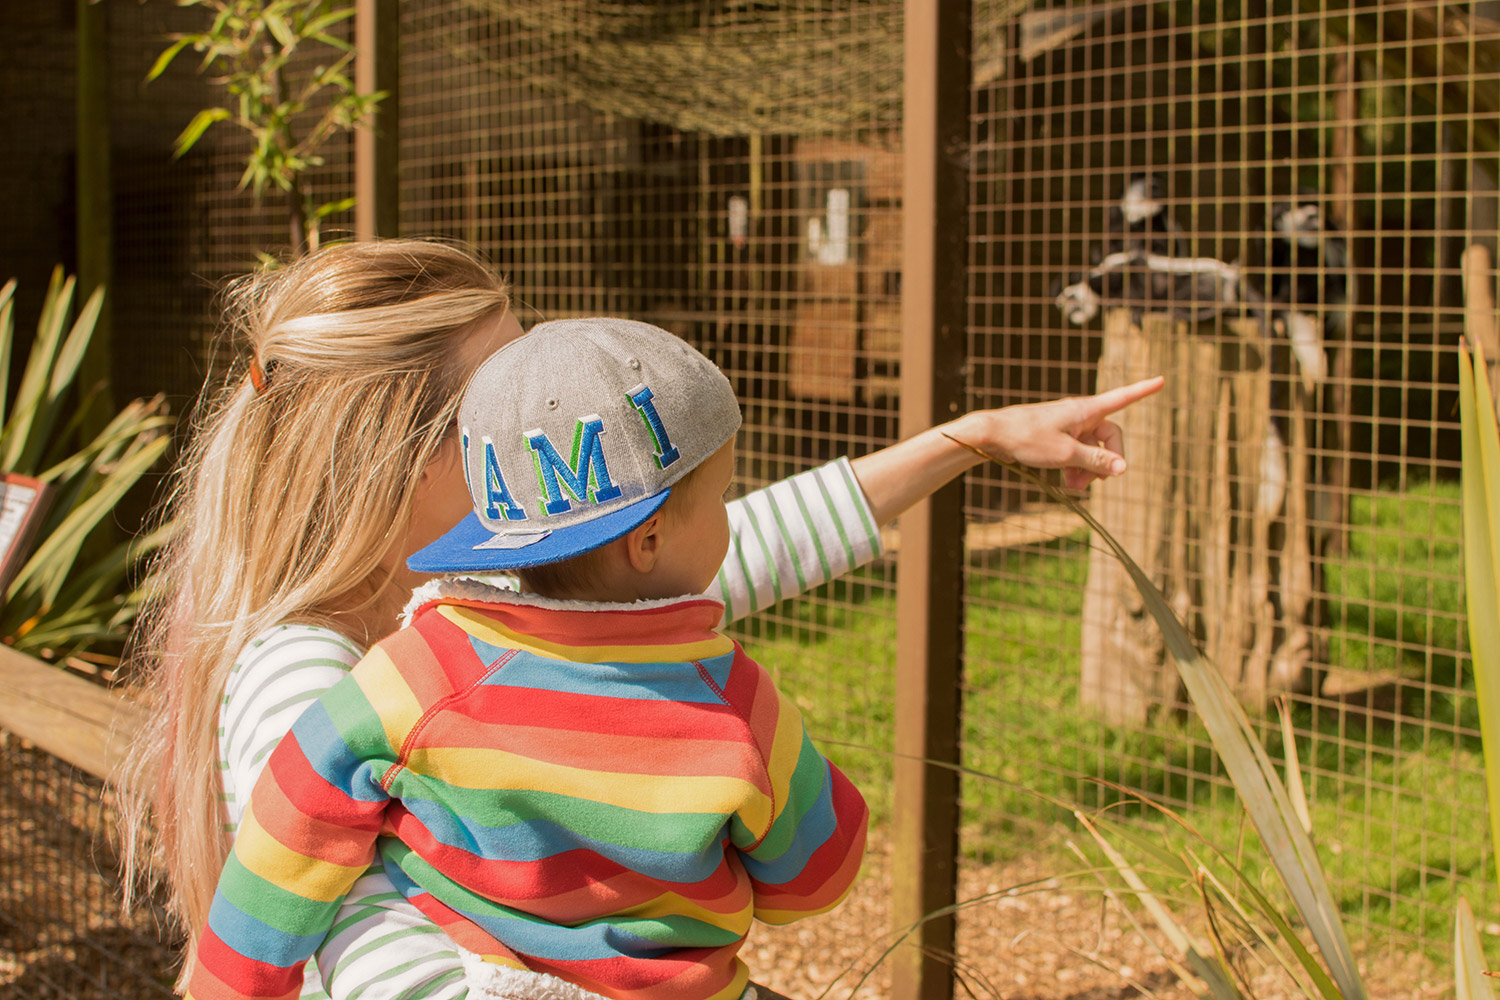 Mum looking at the monkeys holding son wearing rainbow Frugi snuggle fleece and H&M baseball cap at Cotswold Wildlife Park with family